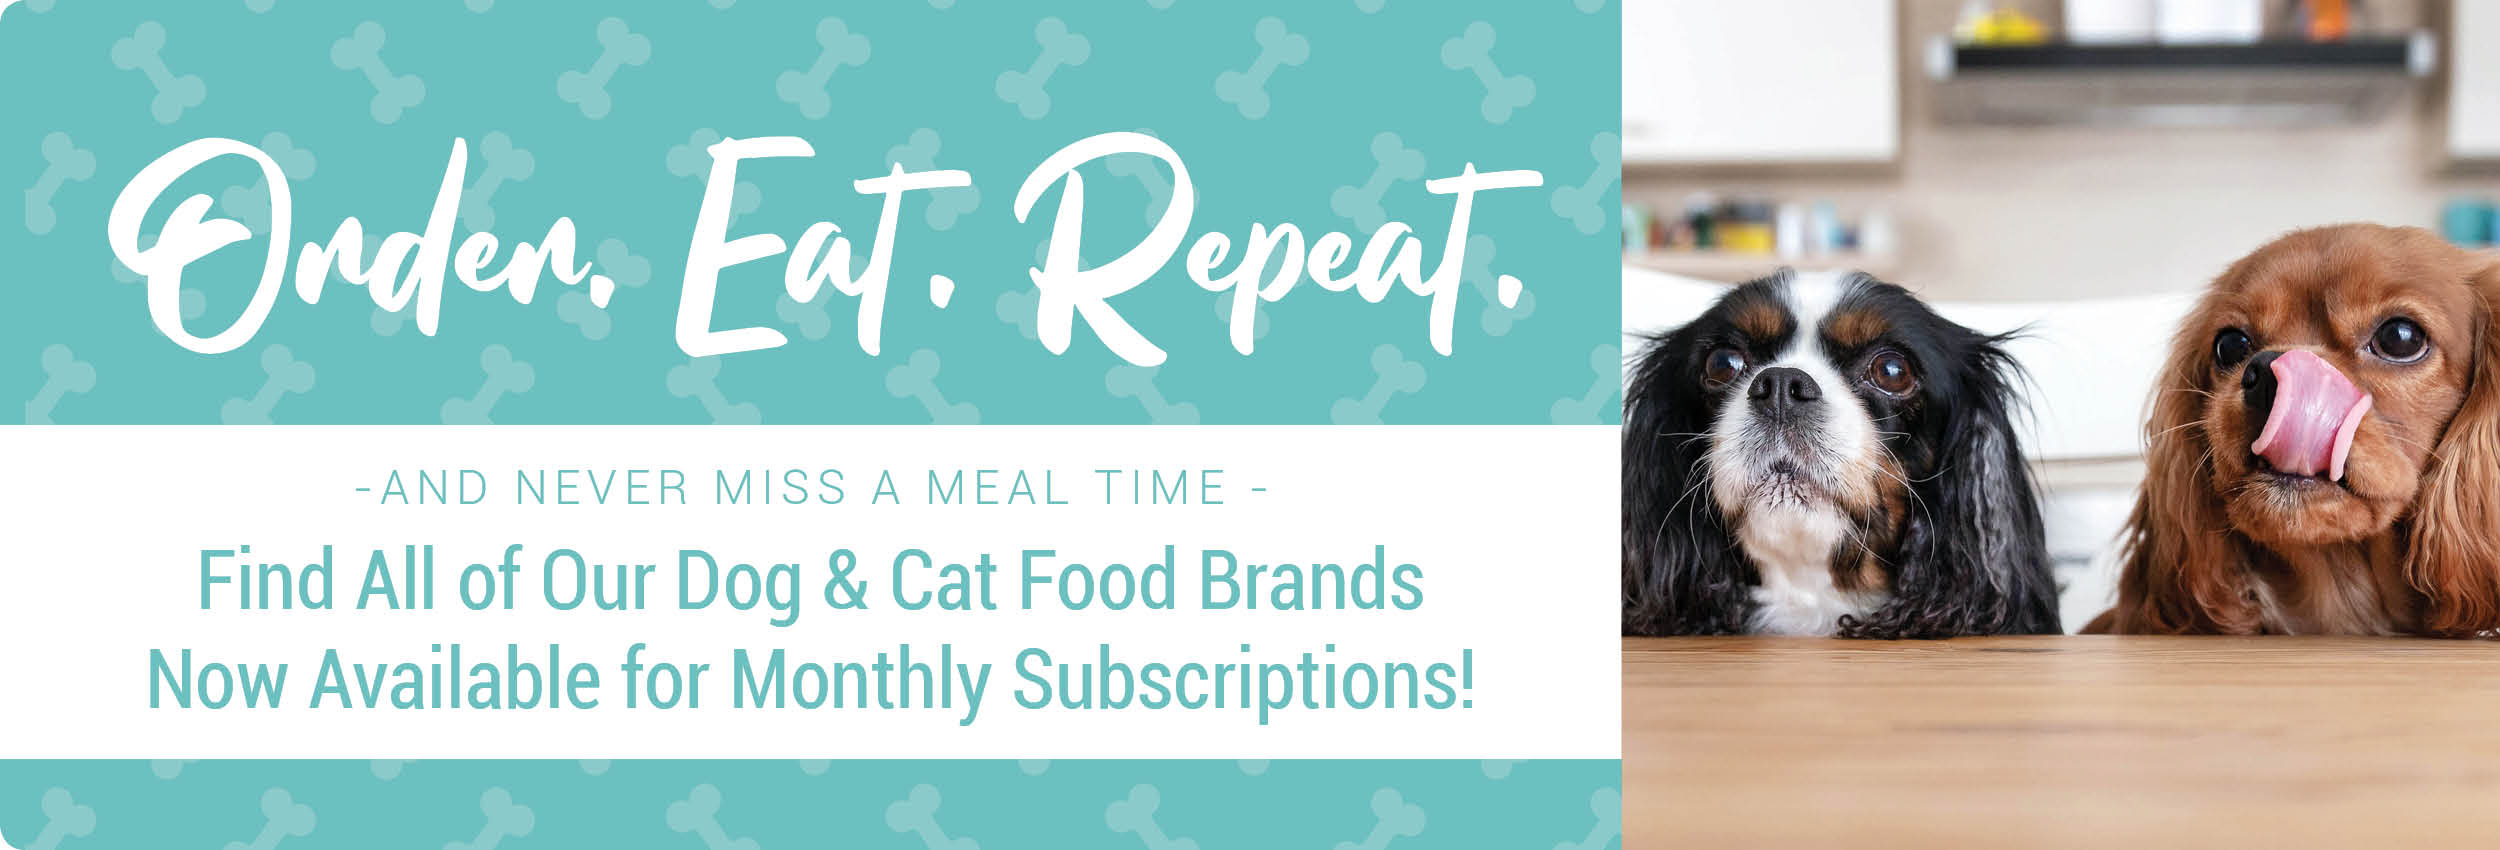 Monthly Pet Food Subscriptions Now Available!